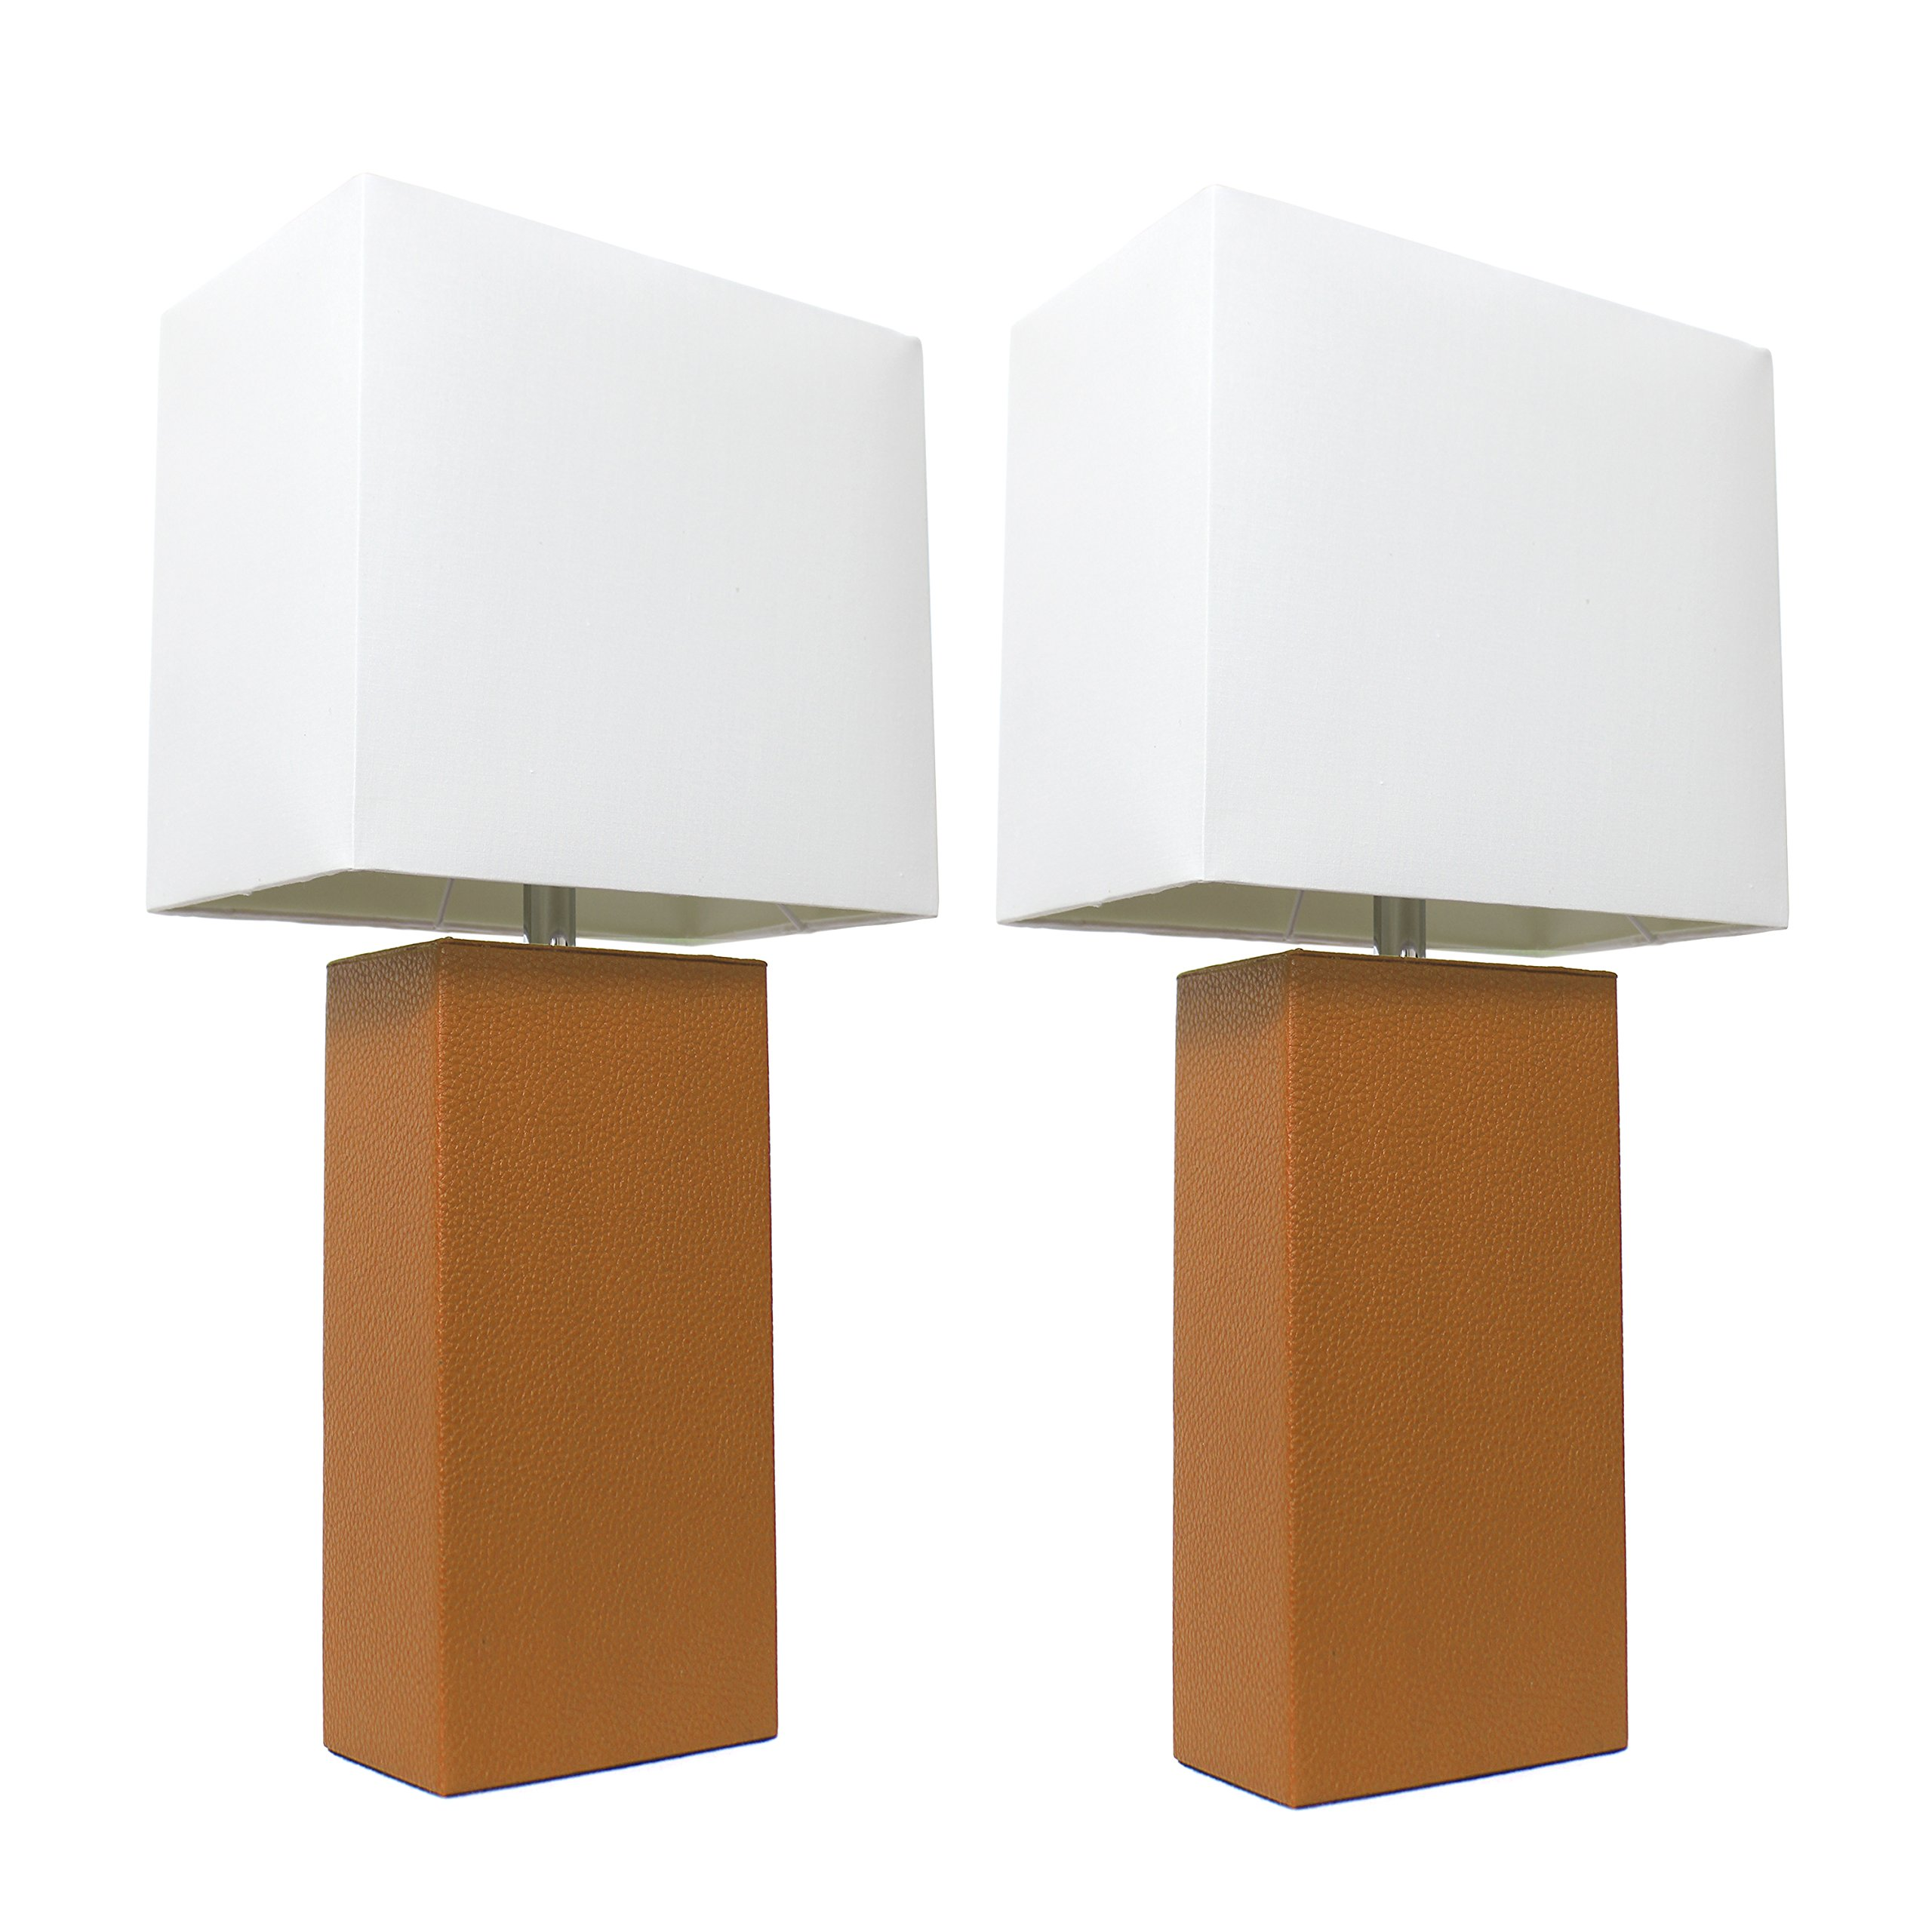 Elegant Designs LC2000-TAN-2PK 2 Pack Leather Lamps 2 Pack Modern Leather Table Lamps with White Fabric Shades, Tan